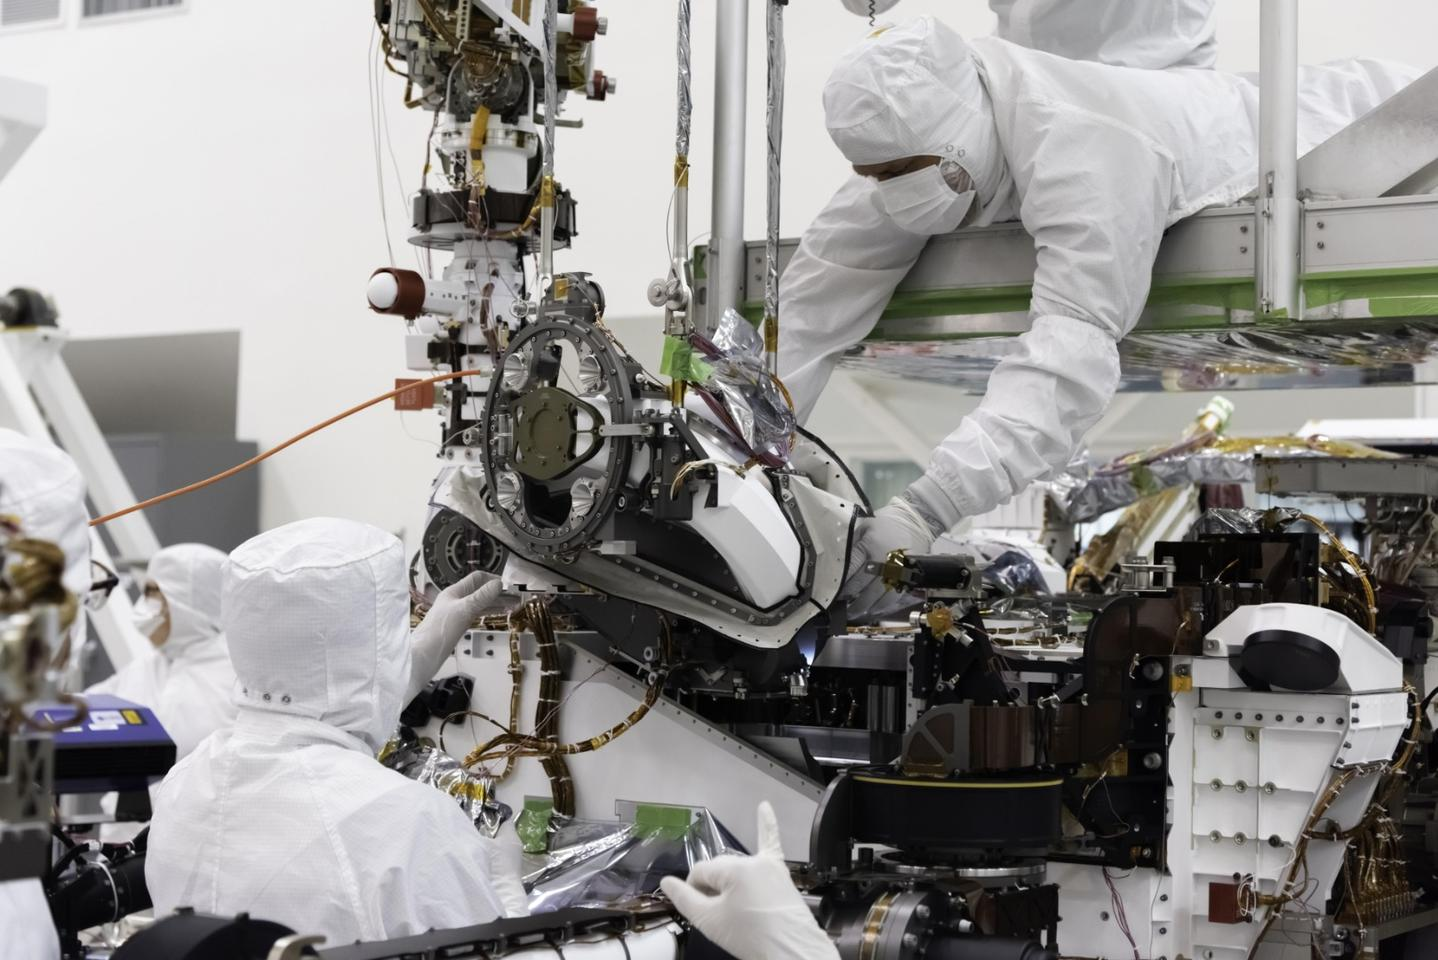 The bit carousel, which lies at the heart of Sample Caching System of NASA's Mars 2020 mission, is attached to the front end of the rover in the Spacecraft Assembly Facility's High Bay 1 at the Jet Propulsion Laboratory in Pasadena, California